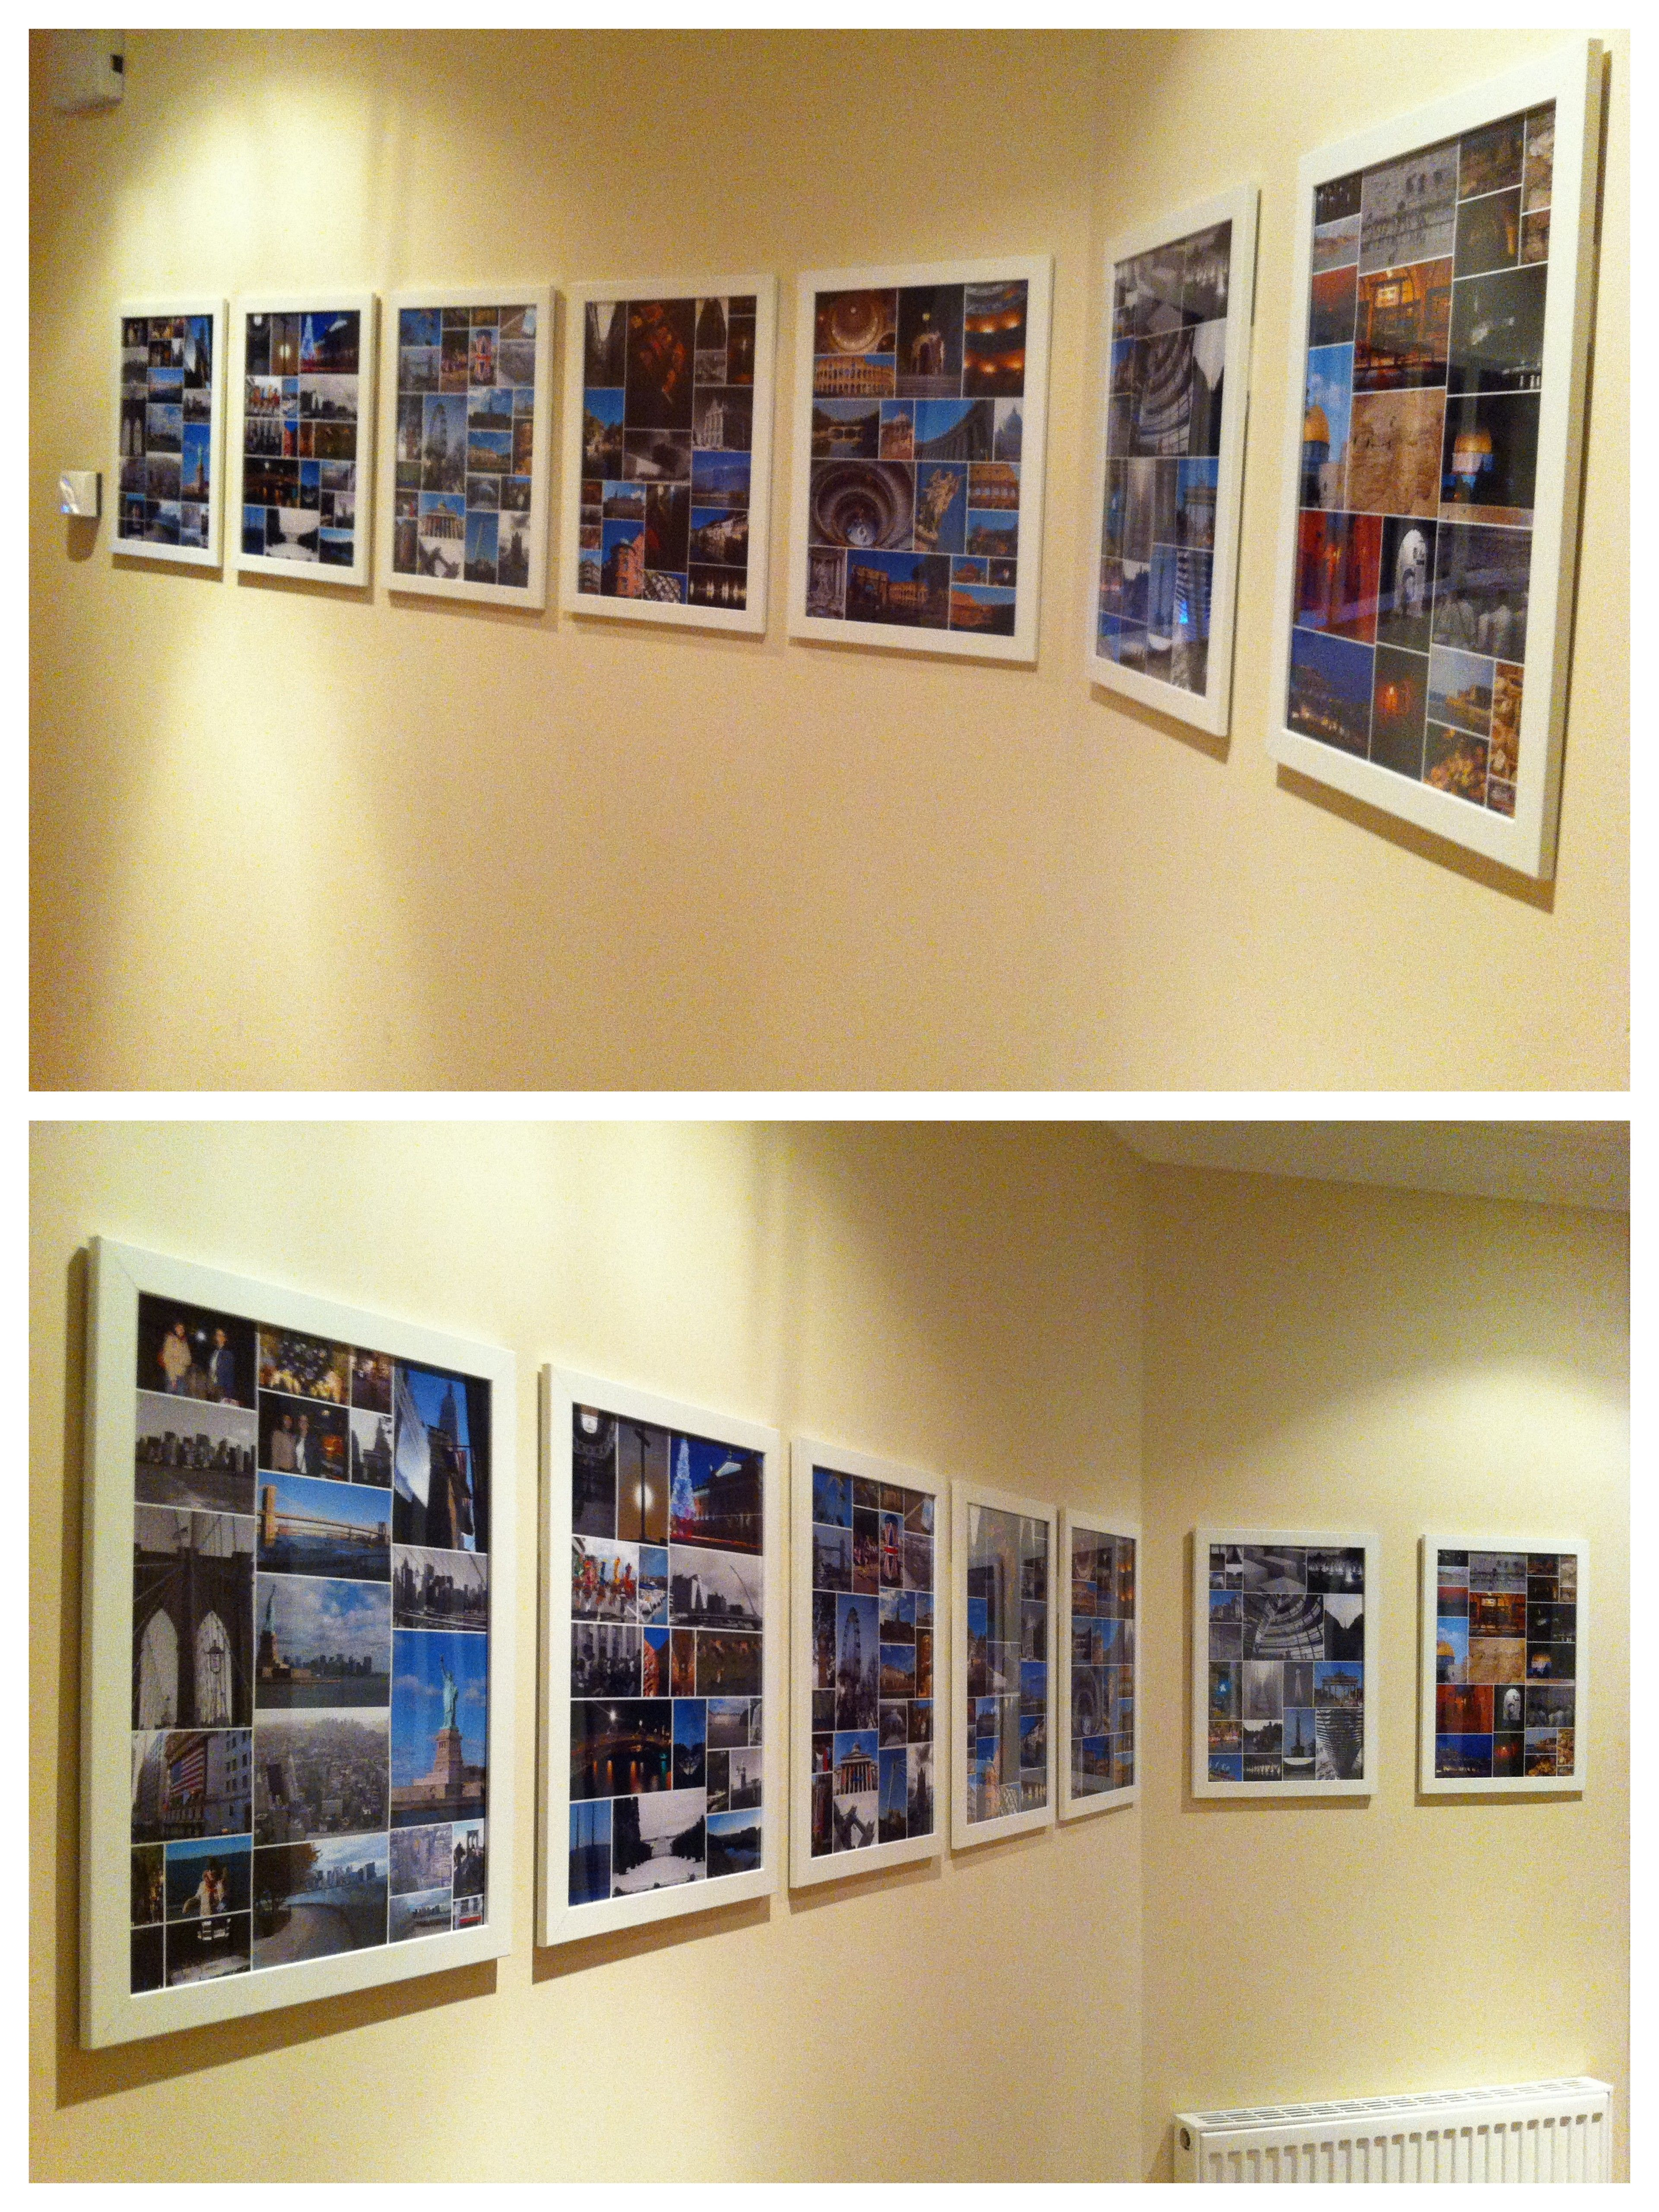 Holiday photo collages in Ikea frames | Room / Wall Decor Ideas ...